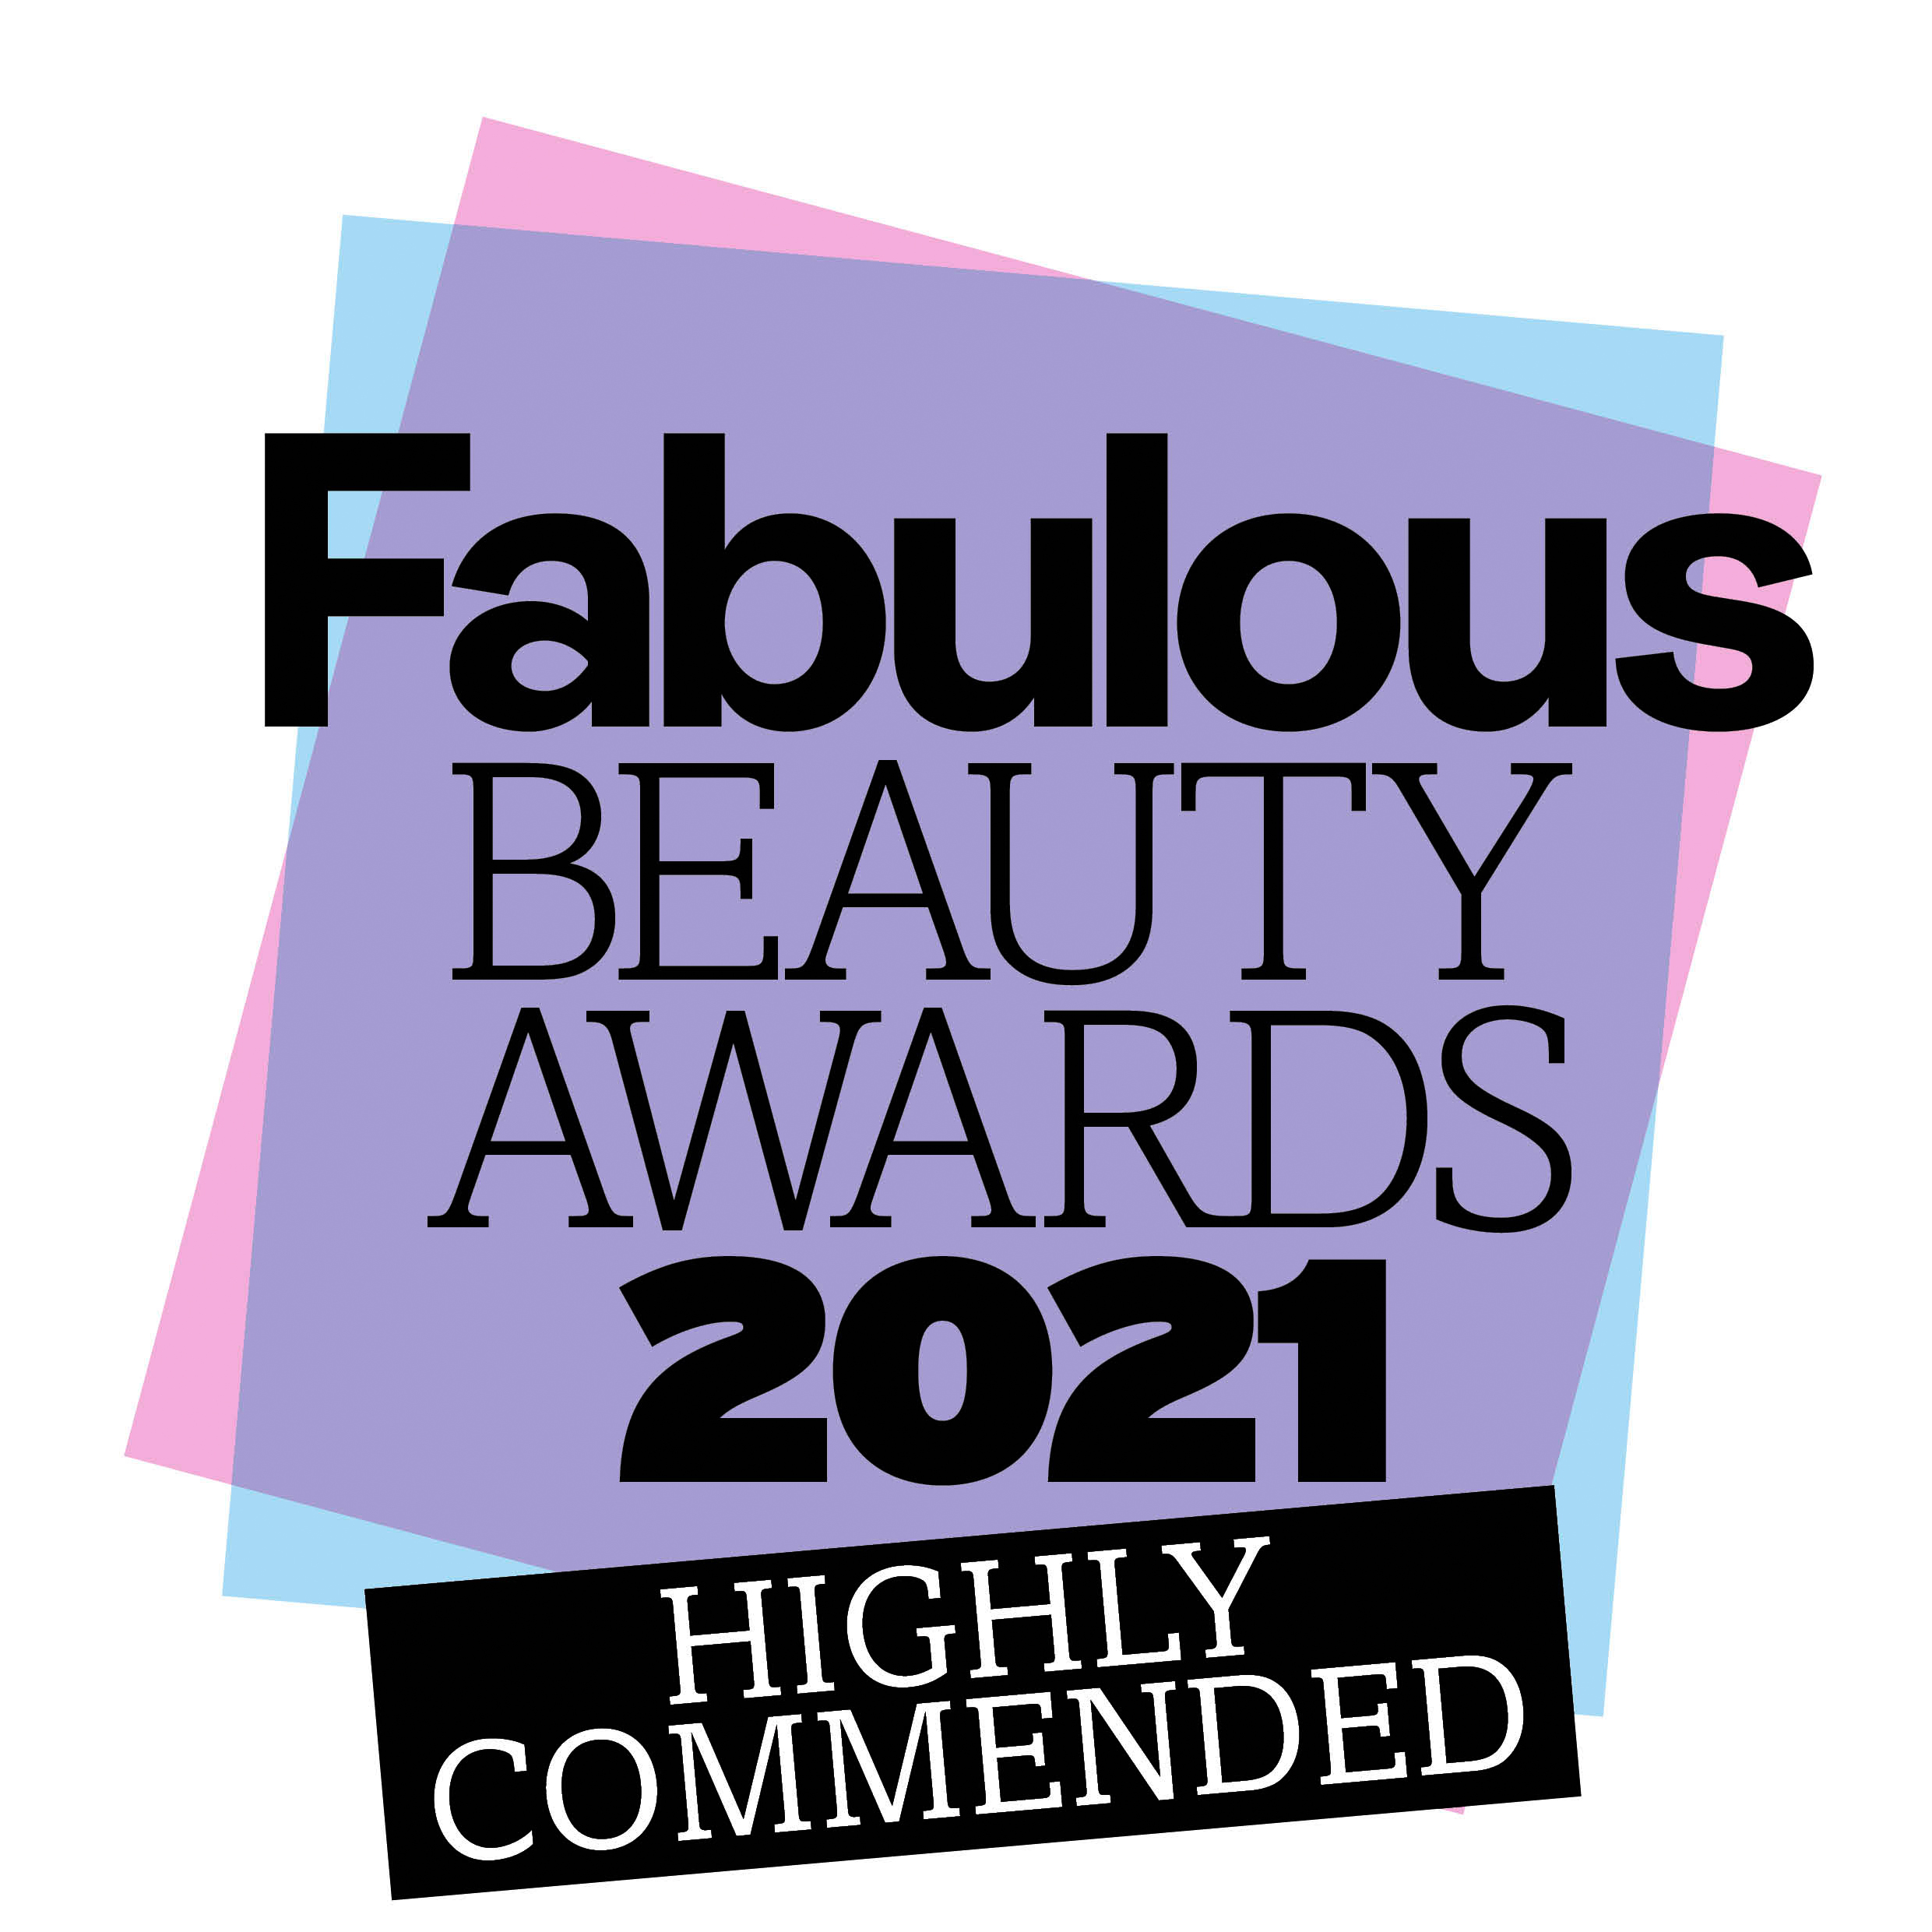 Fabulous Beauty Awards Highly Commended 2021